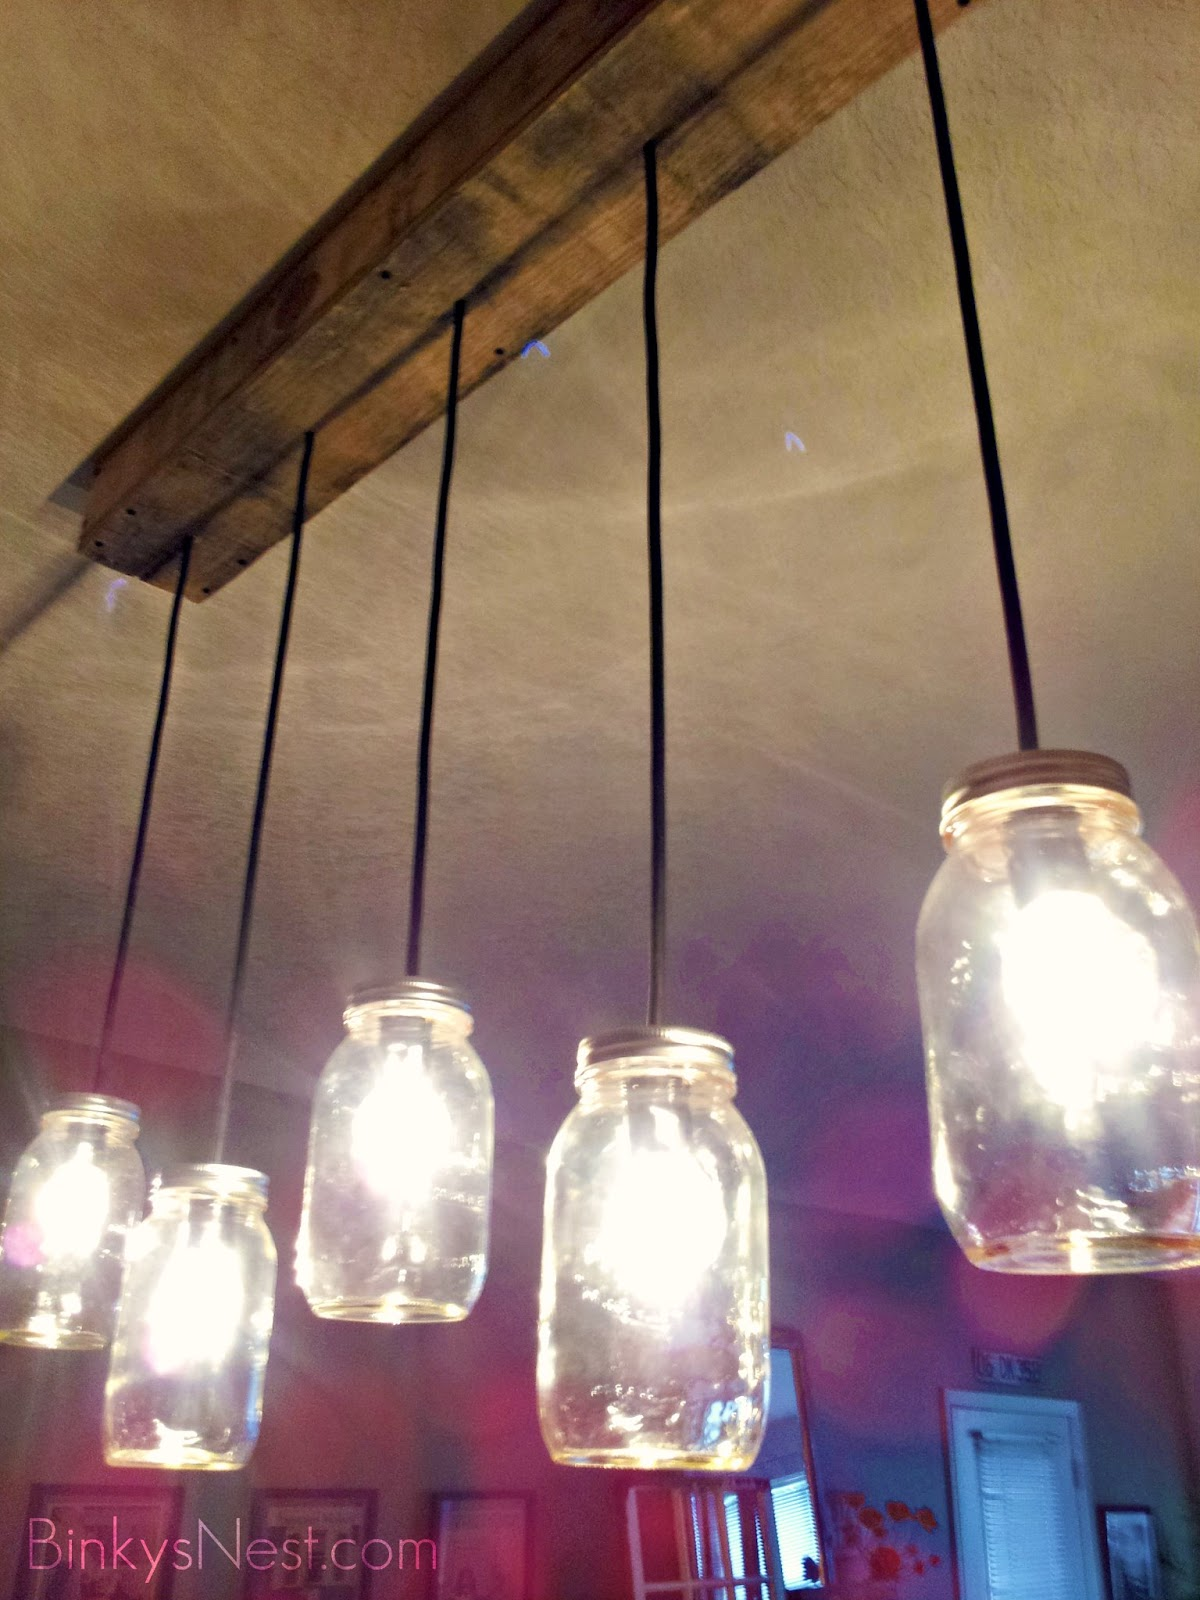 lighting diy. Mason Jar \u0026 Rustic Pallet Light Fixture DIY On BinkysNest.com Lighting Diy